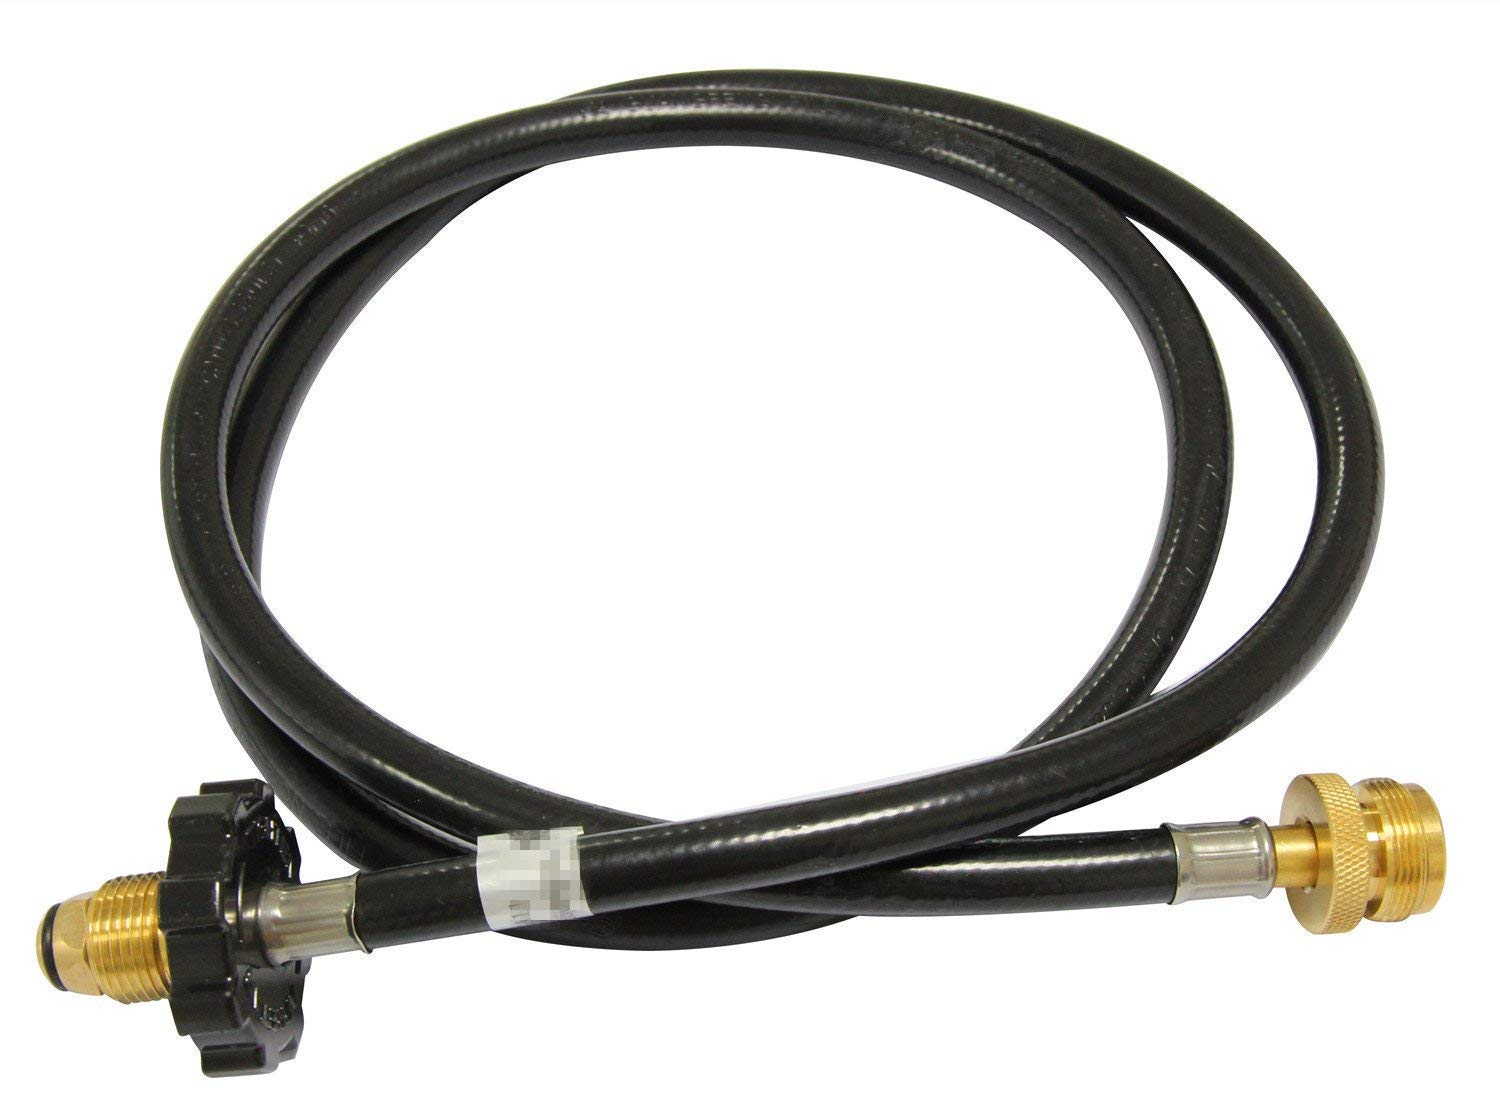 Hongso HRCC1 5-Foot High-Pressure Propane Hose and Adapter for Connecting Appliance to refillable 20lbs Propane Cylinder, CSA Certified